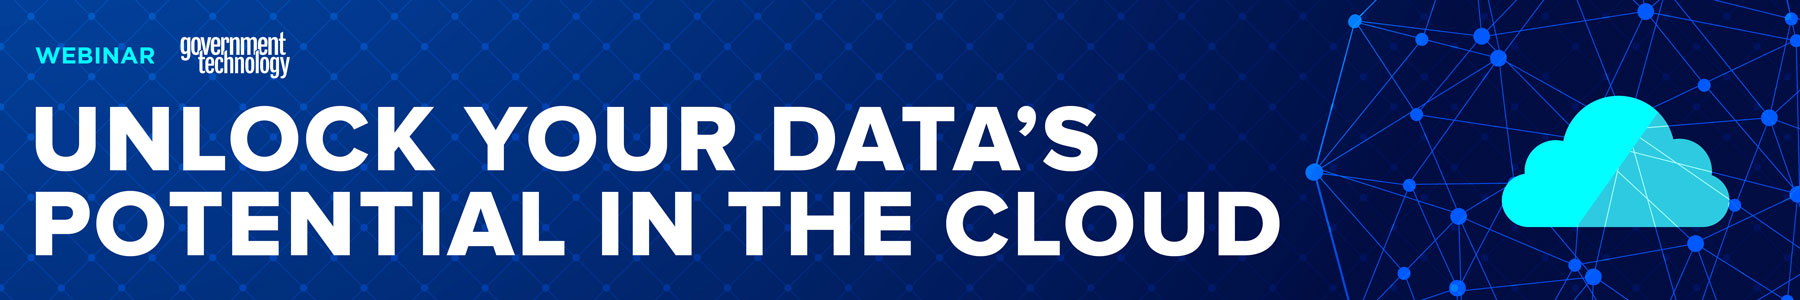 Unlock Your Data's Potential in the Cloud